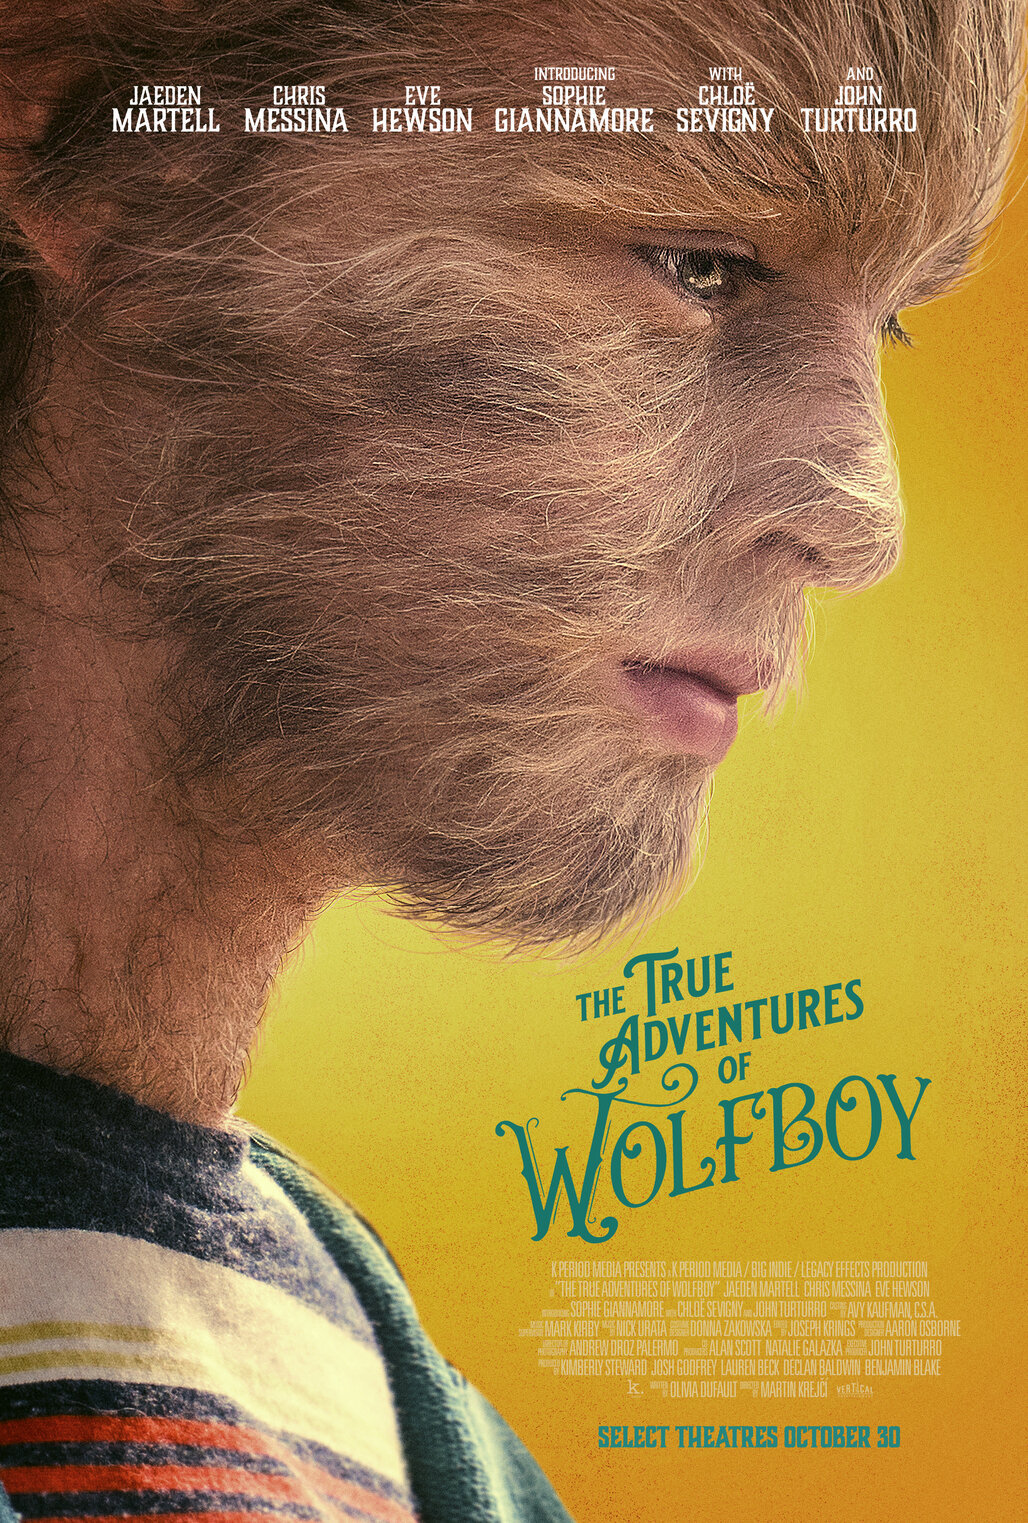 The True Adventures of Wolfboy (2020) poster image